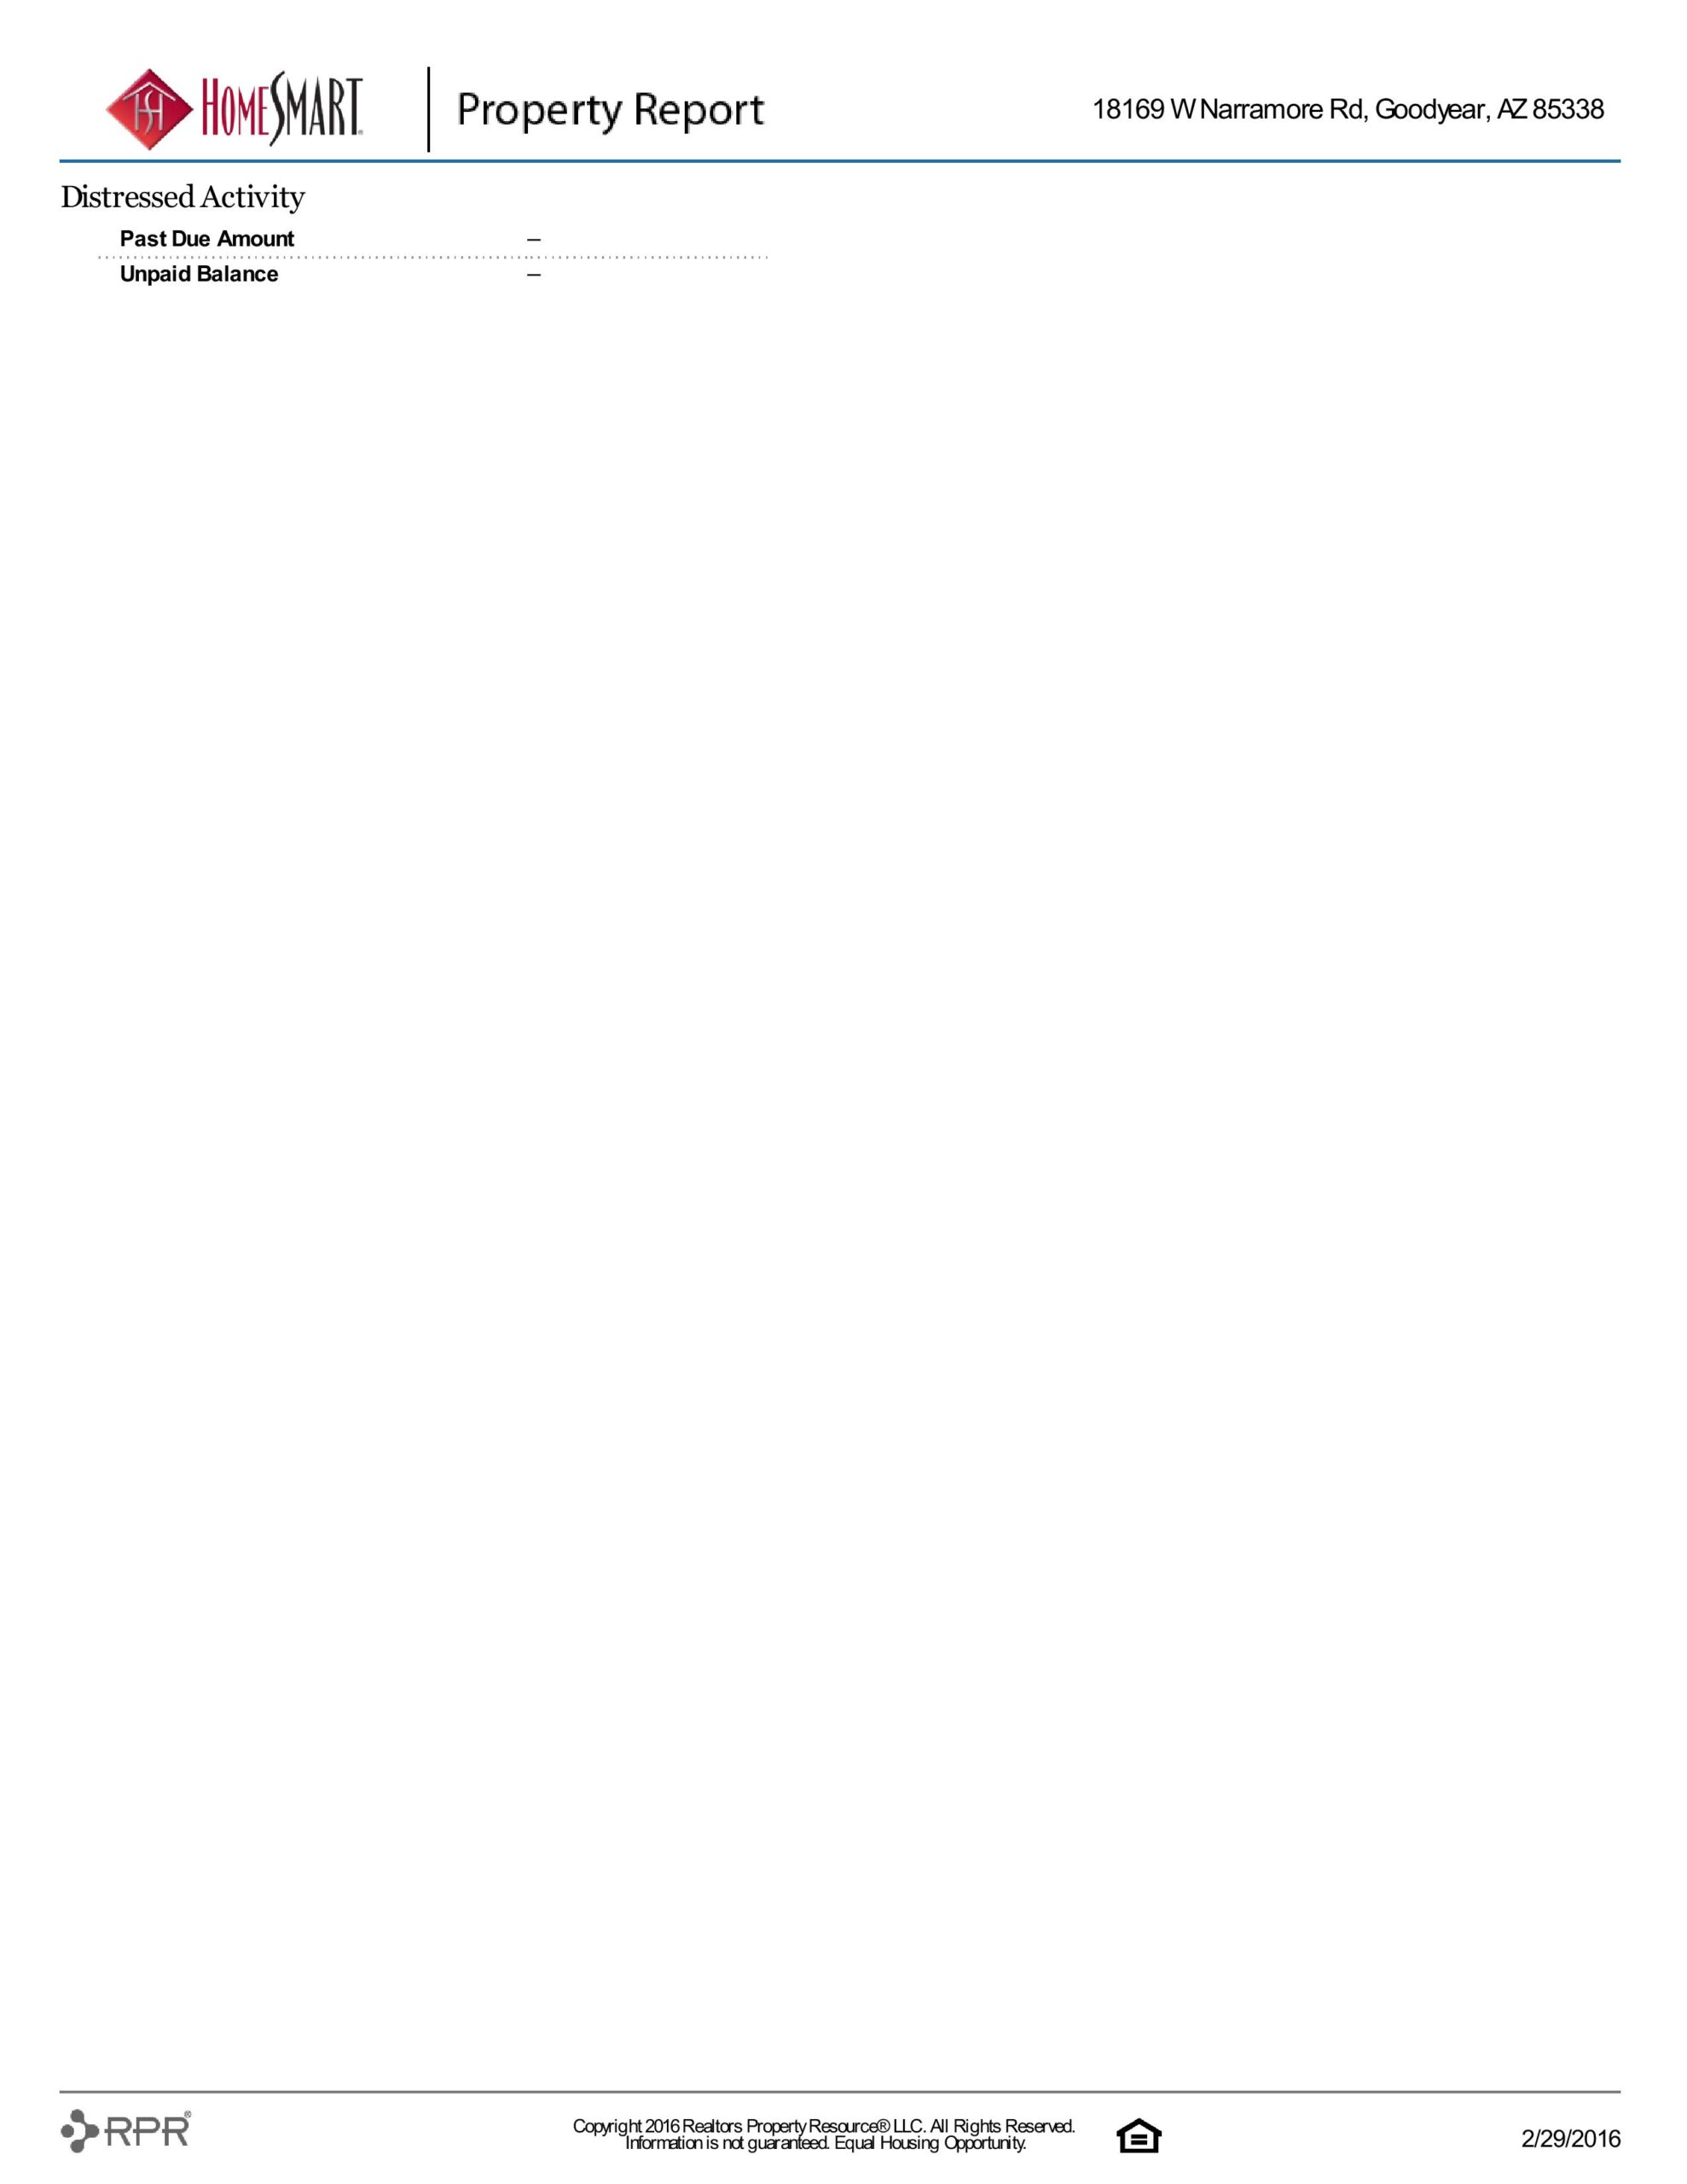 18169 W NARRAMORE RD PROPERTY REPORT-page-013